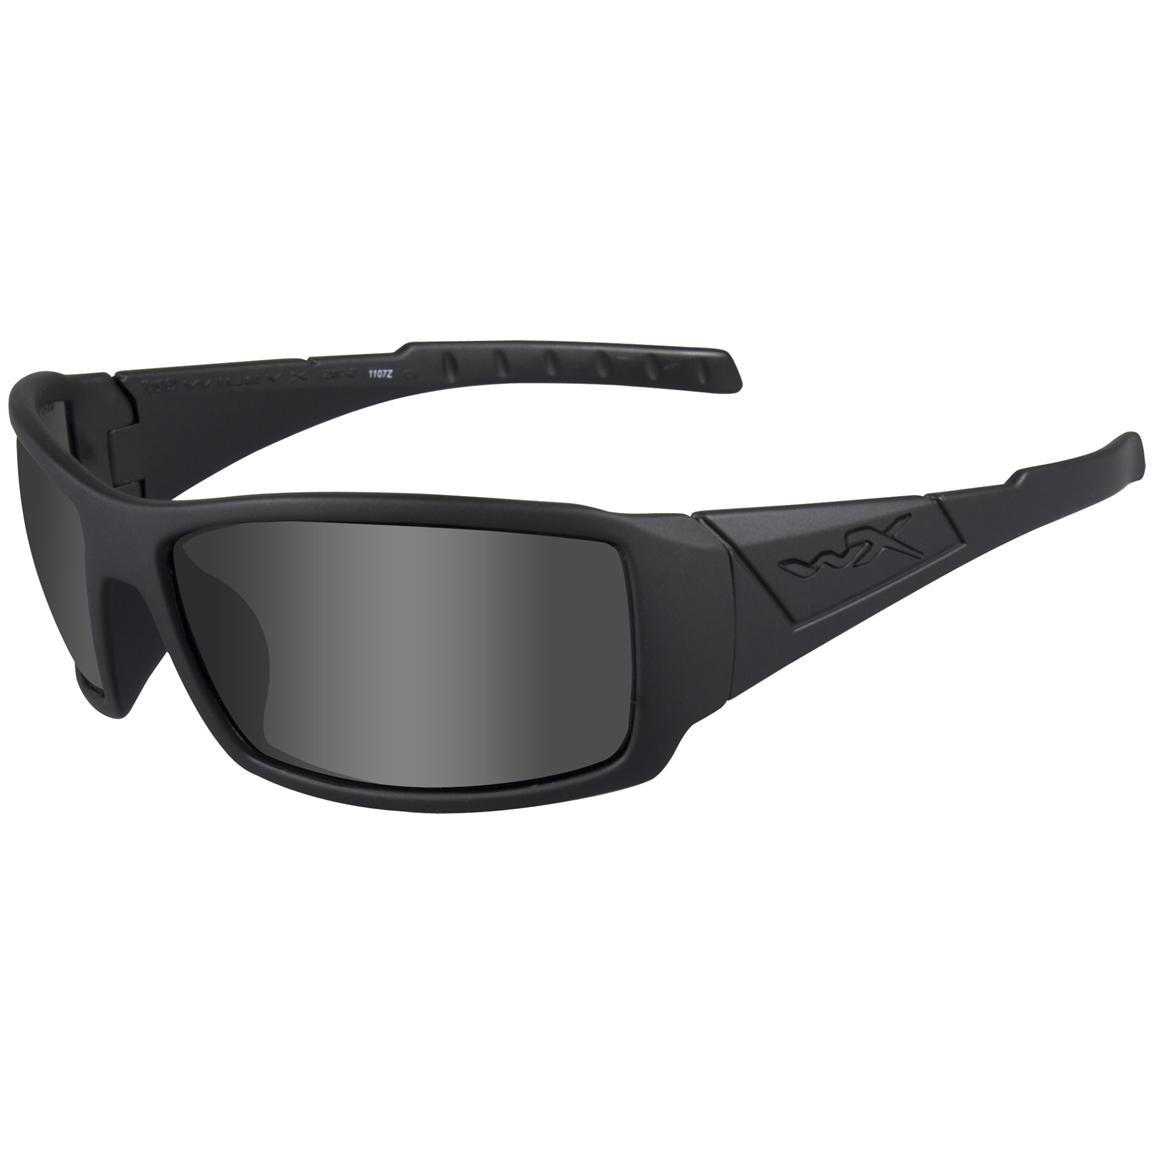 Wiley X® Twisted Street Sunglasses, Grey